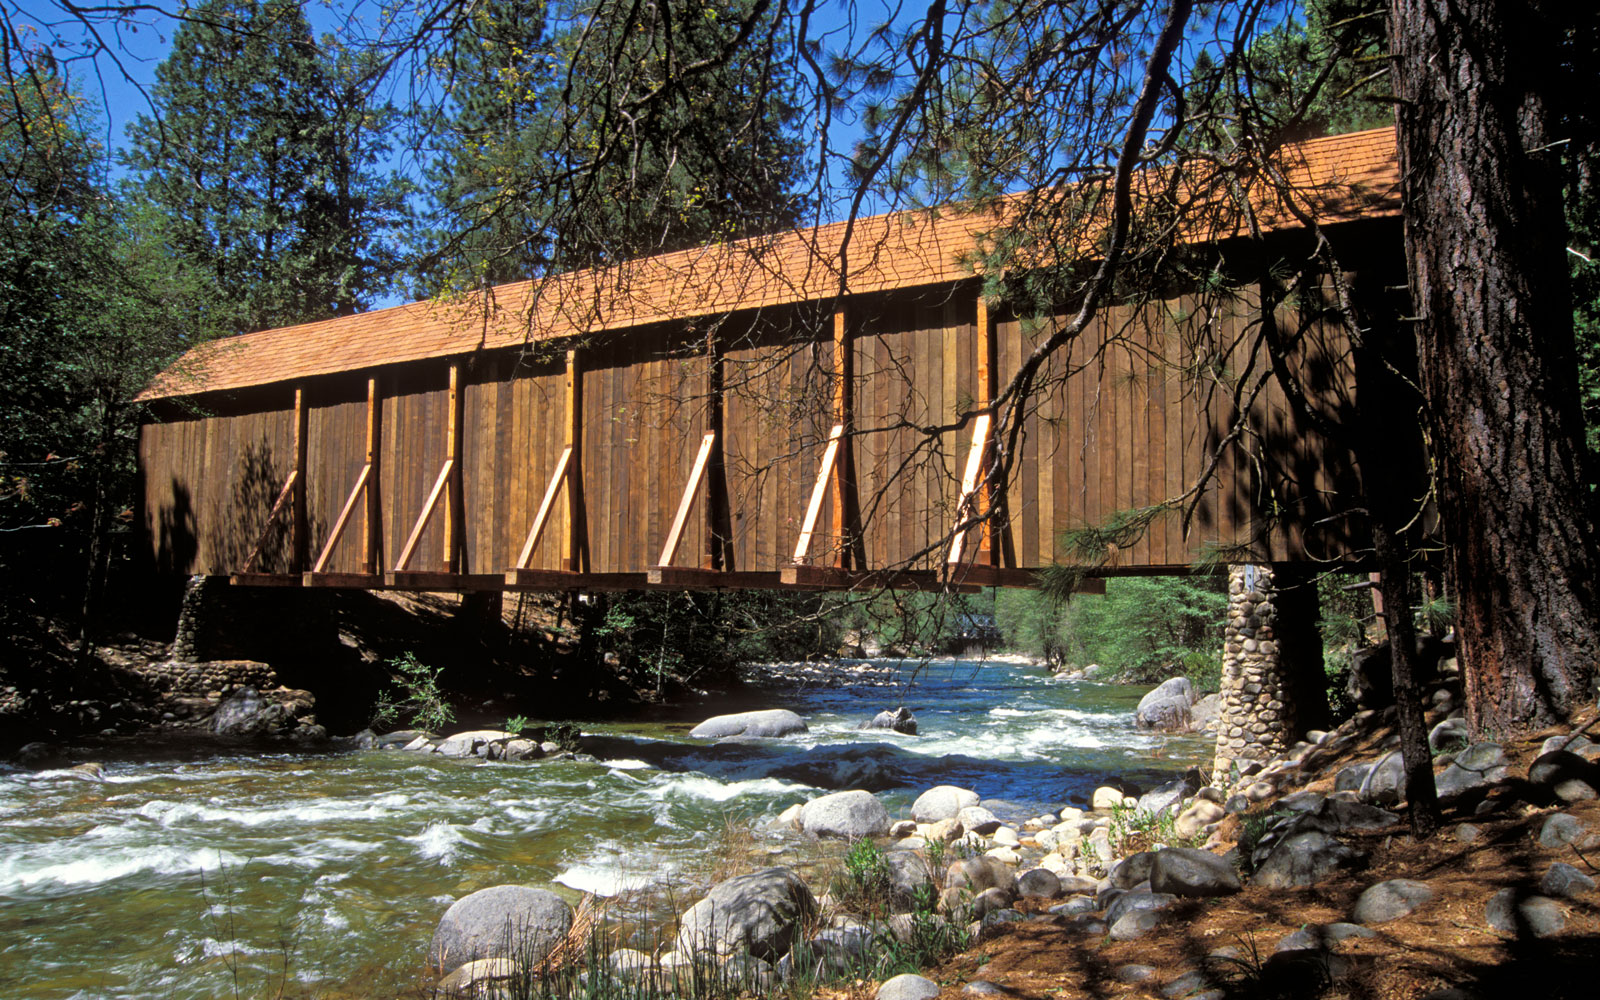 America's Most Beautiful Covered Bridges: Wawona